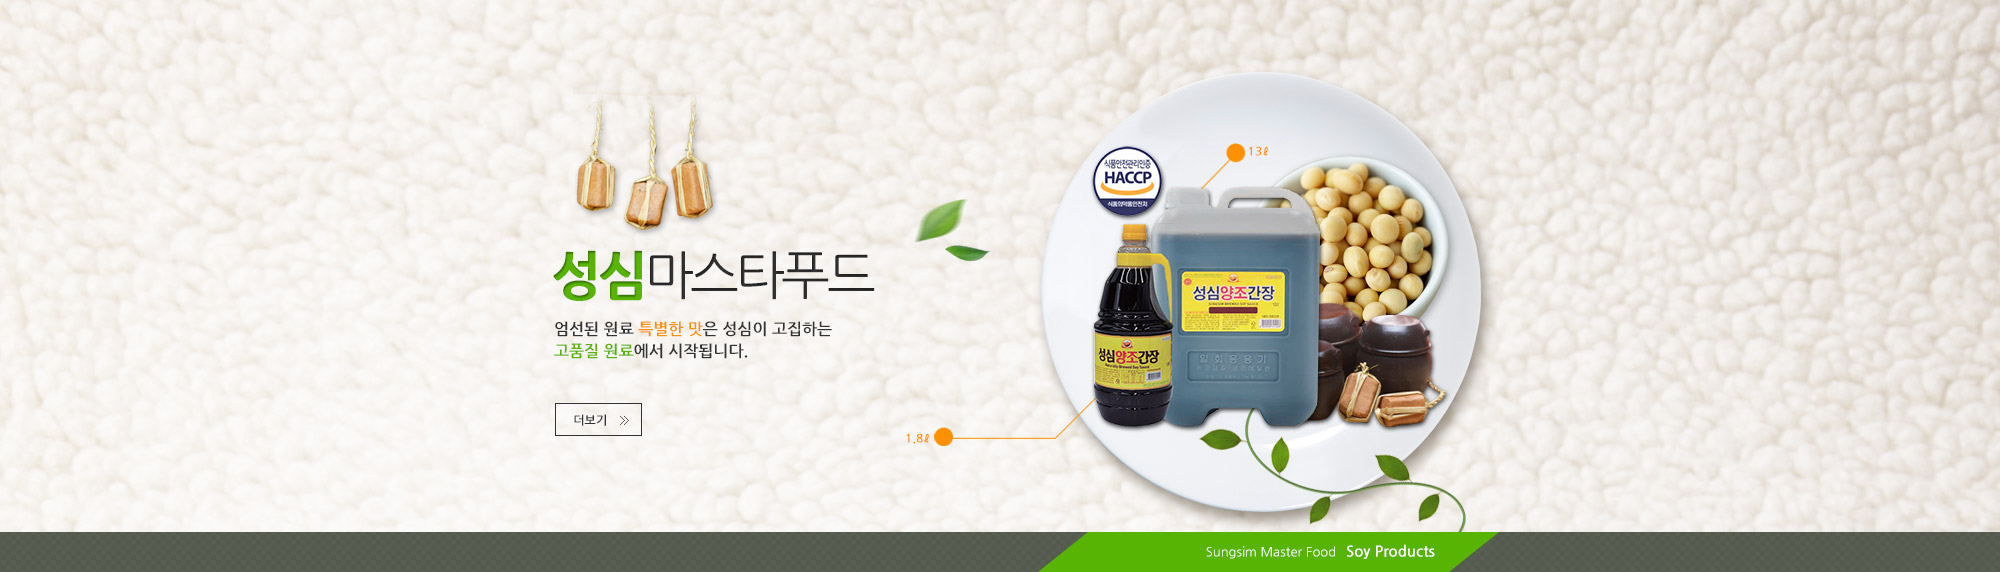 Sungsim Master Food - Soy Products